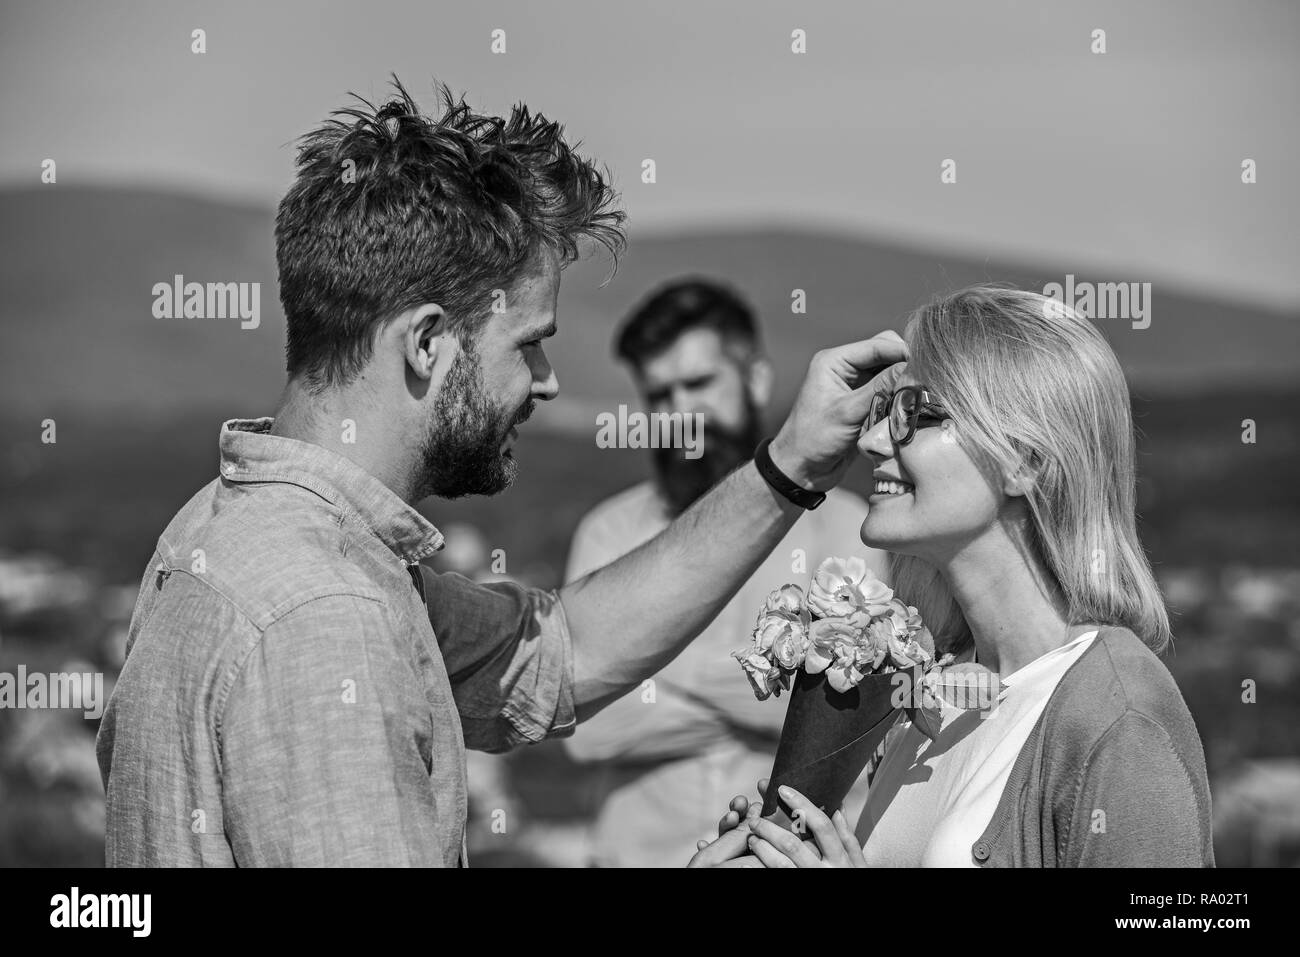 Couple in love dating while jealous husband fixedly watching on background. Unrequited love concept. Lovers meeting outdoor flirt romance relations. Couple romantic date lover present bouquet flowers. - Stock Image